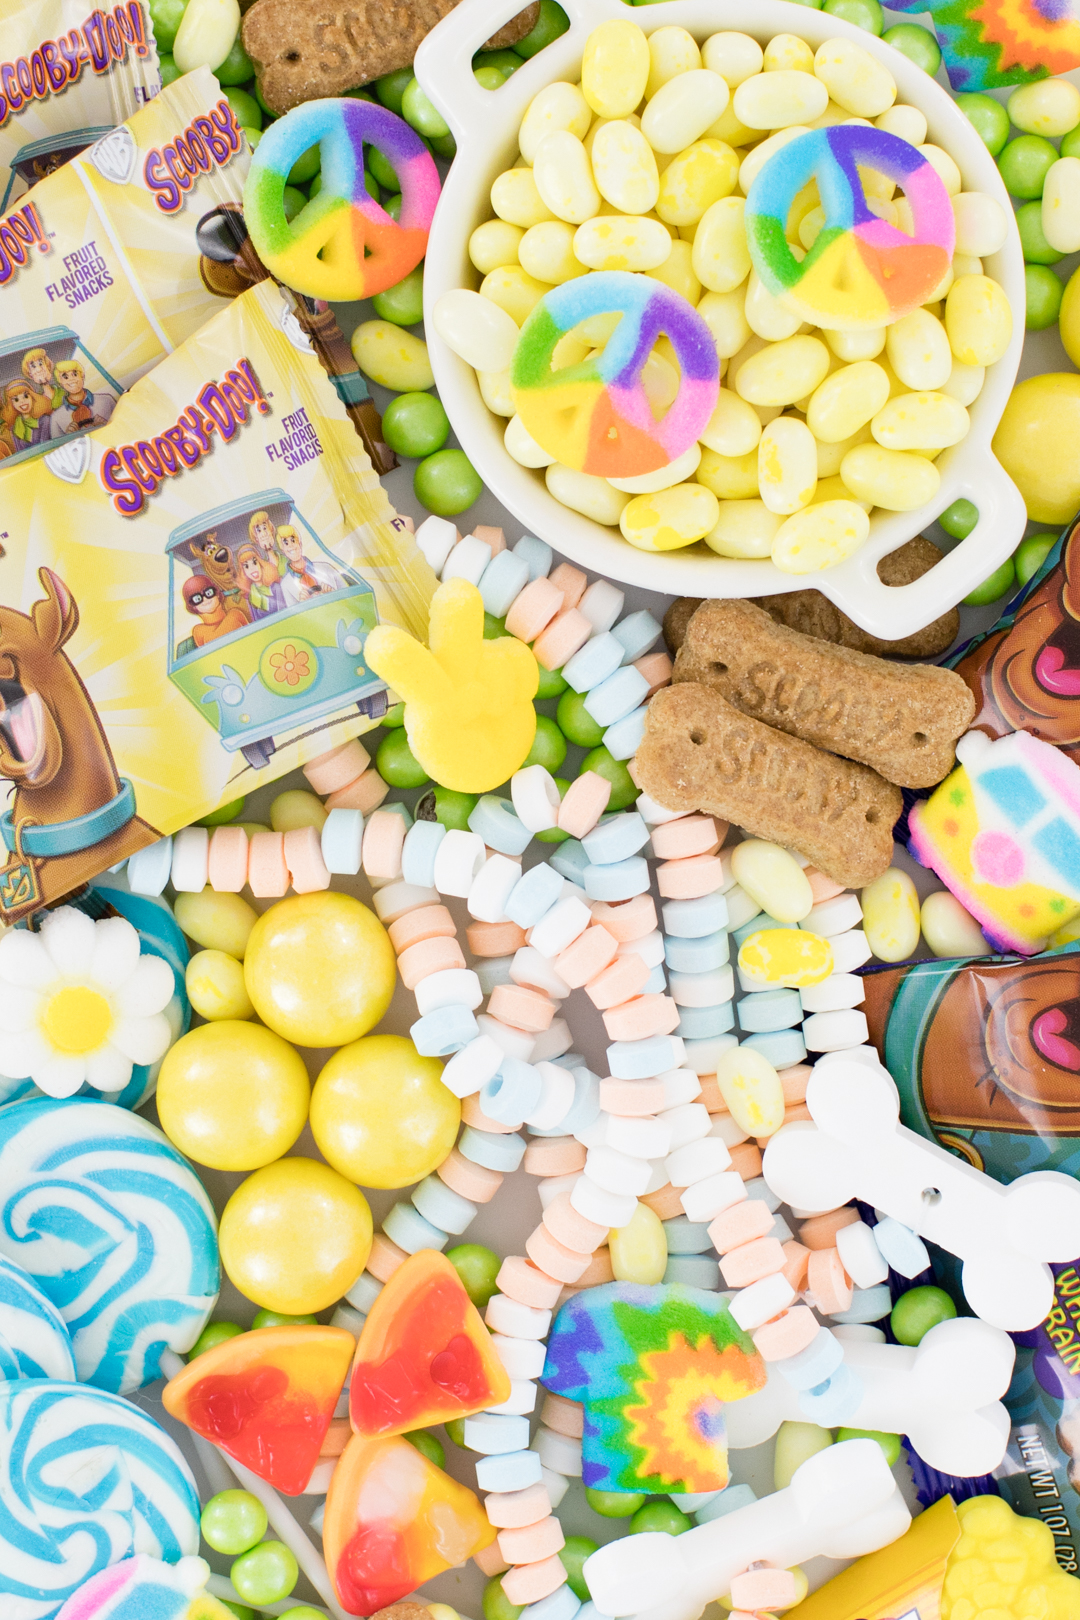 Tray of Scooby Doo Candies